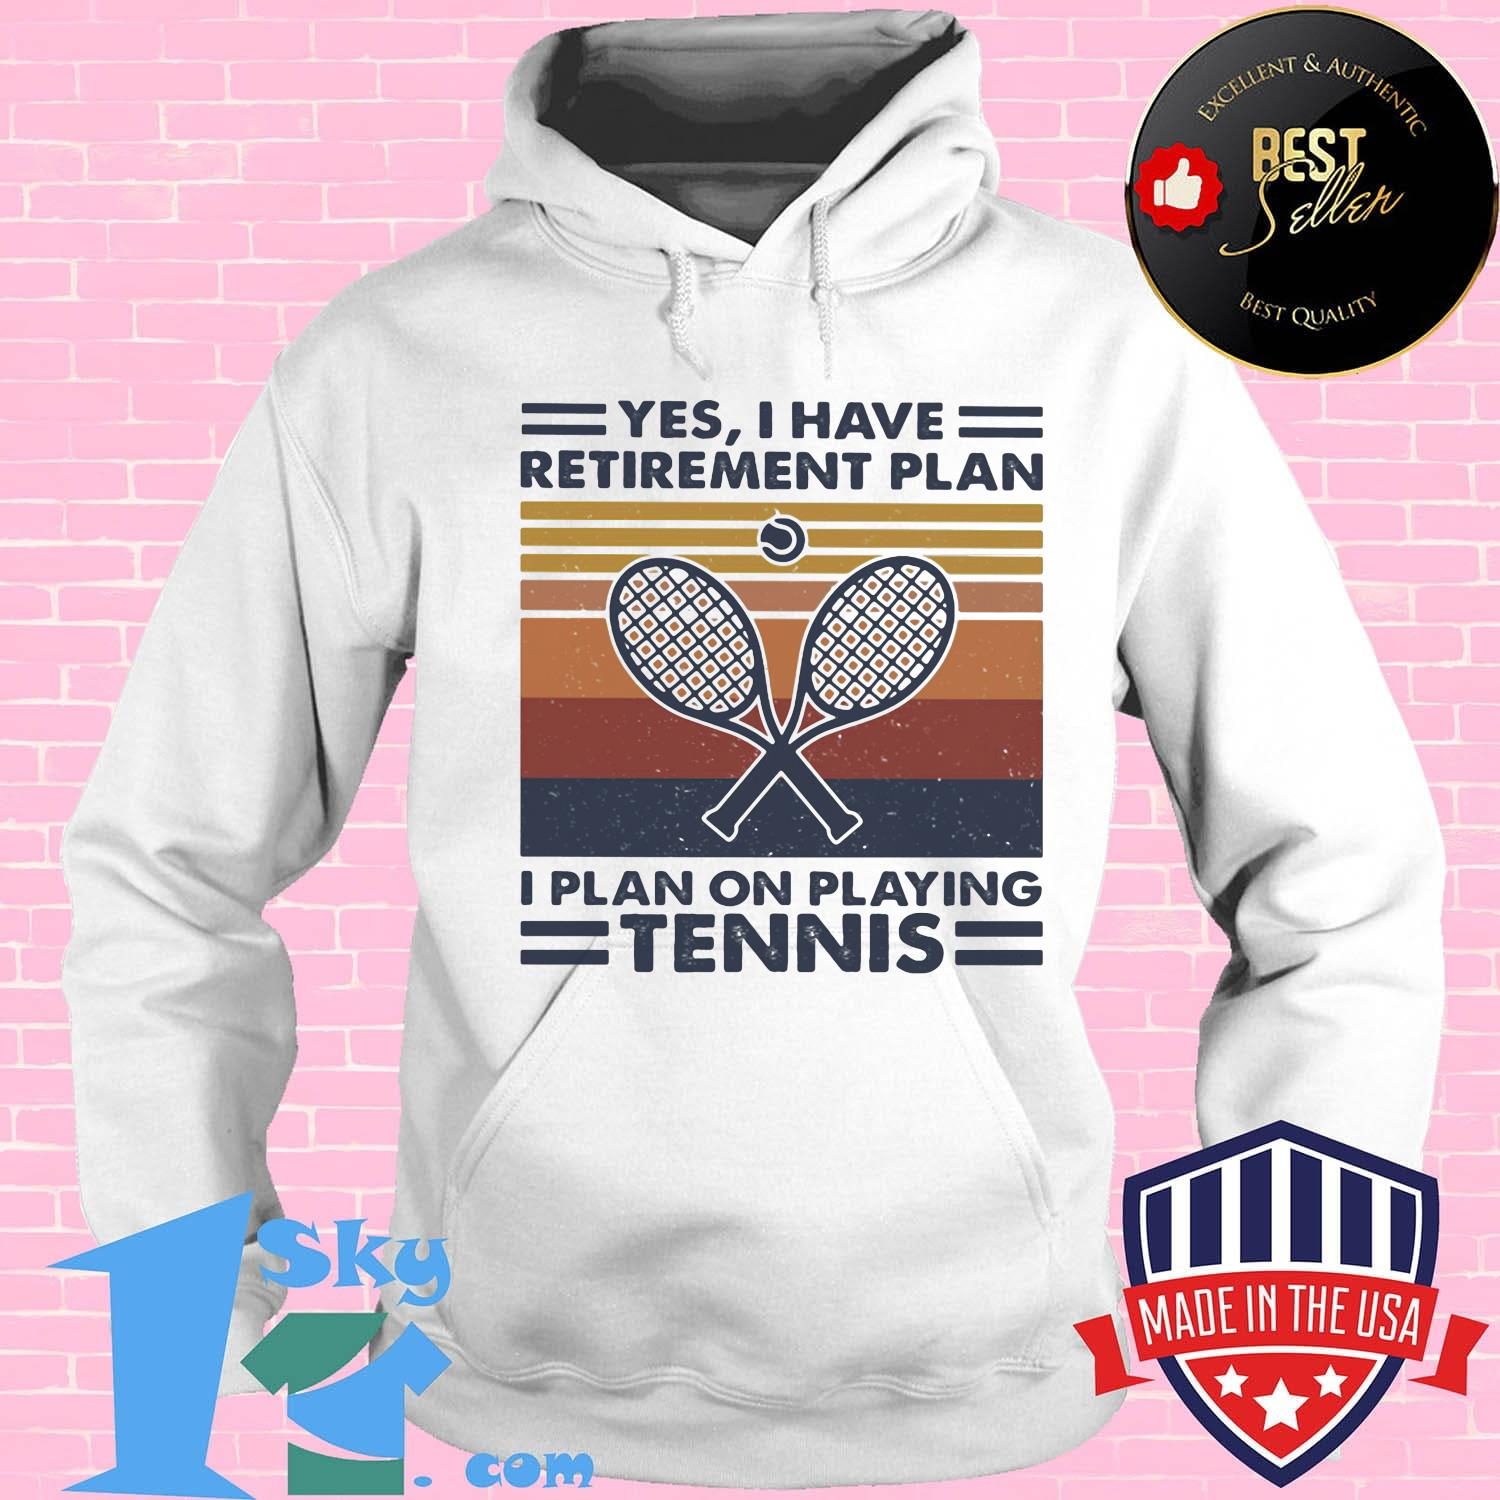 c791ec3c yes i have retirement plan i plan on playing tennis vintage retro shirt hoodie - Shop trending - We offer all trend shirts - 1SkyTee